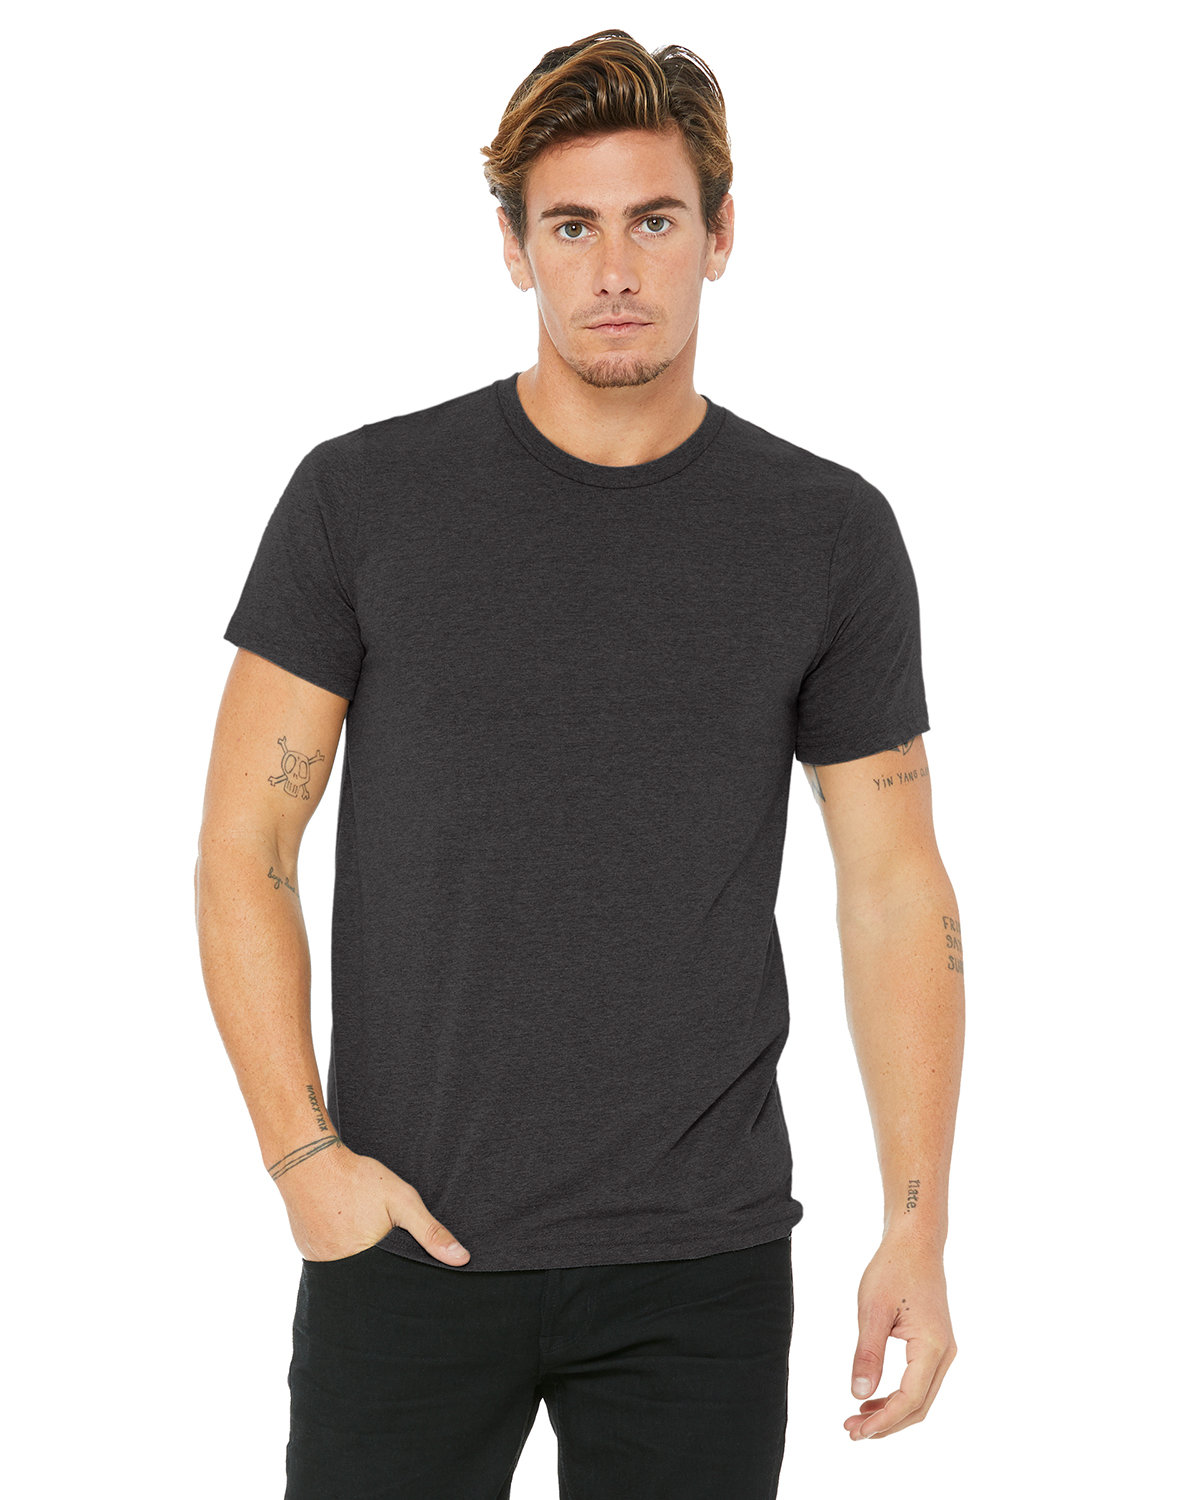 Bella + Canvas Unisex Made In The USA Jersey T-Shirt DRK GREY HEATHER